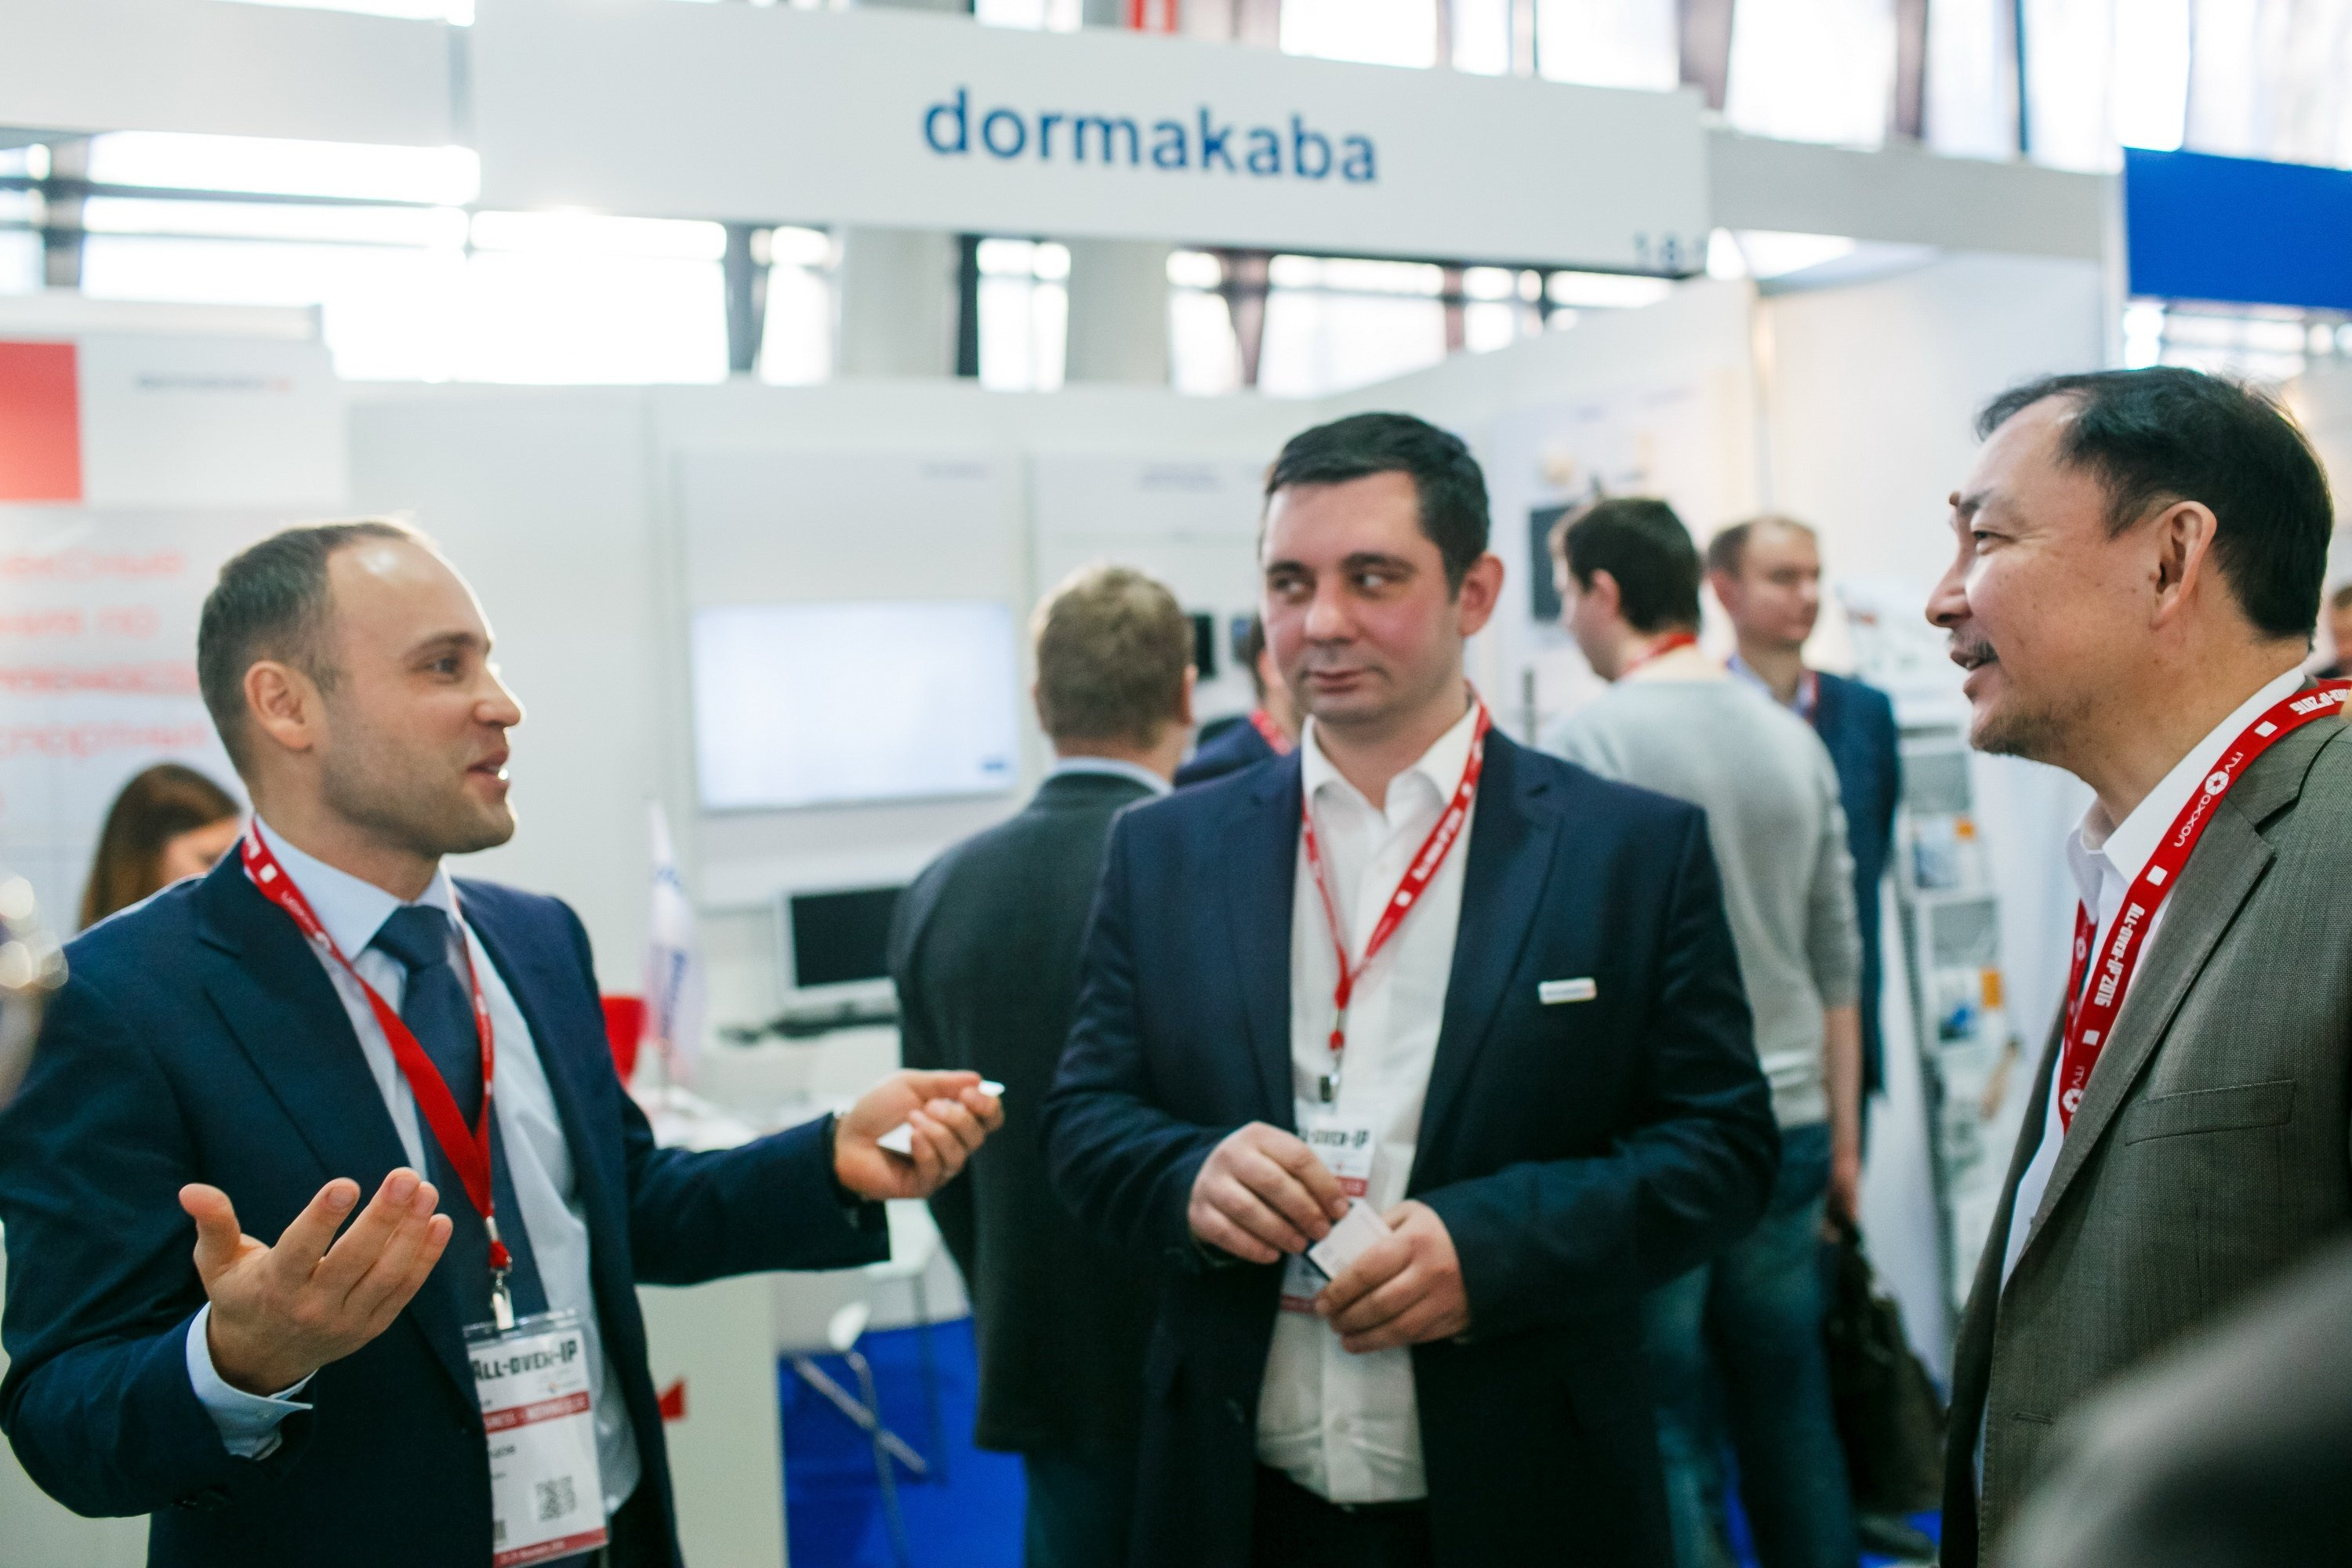 dormakaba – Knowledge Centre for Banks, Retail, Critical Infrastructure and Hotels at All-over-IP 2018